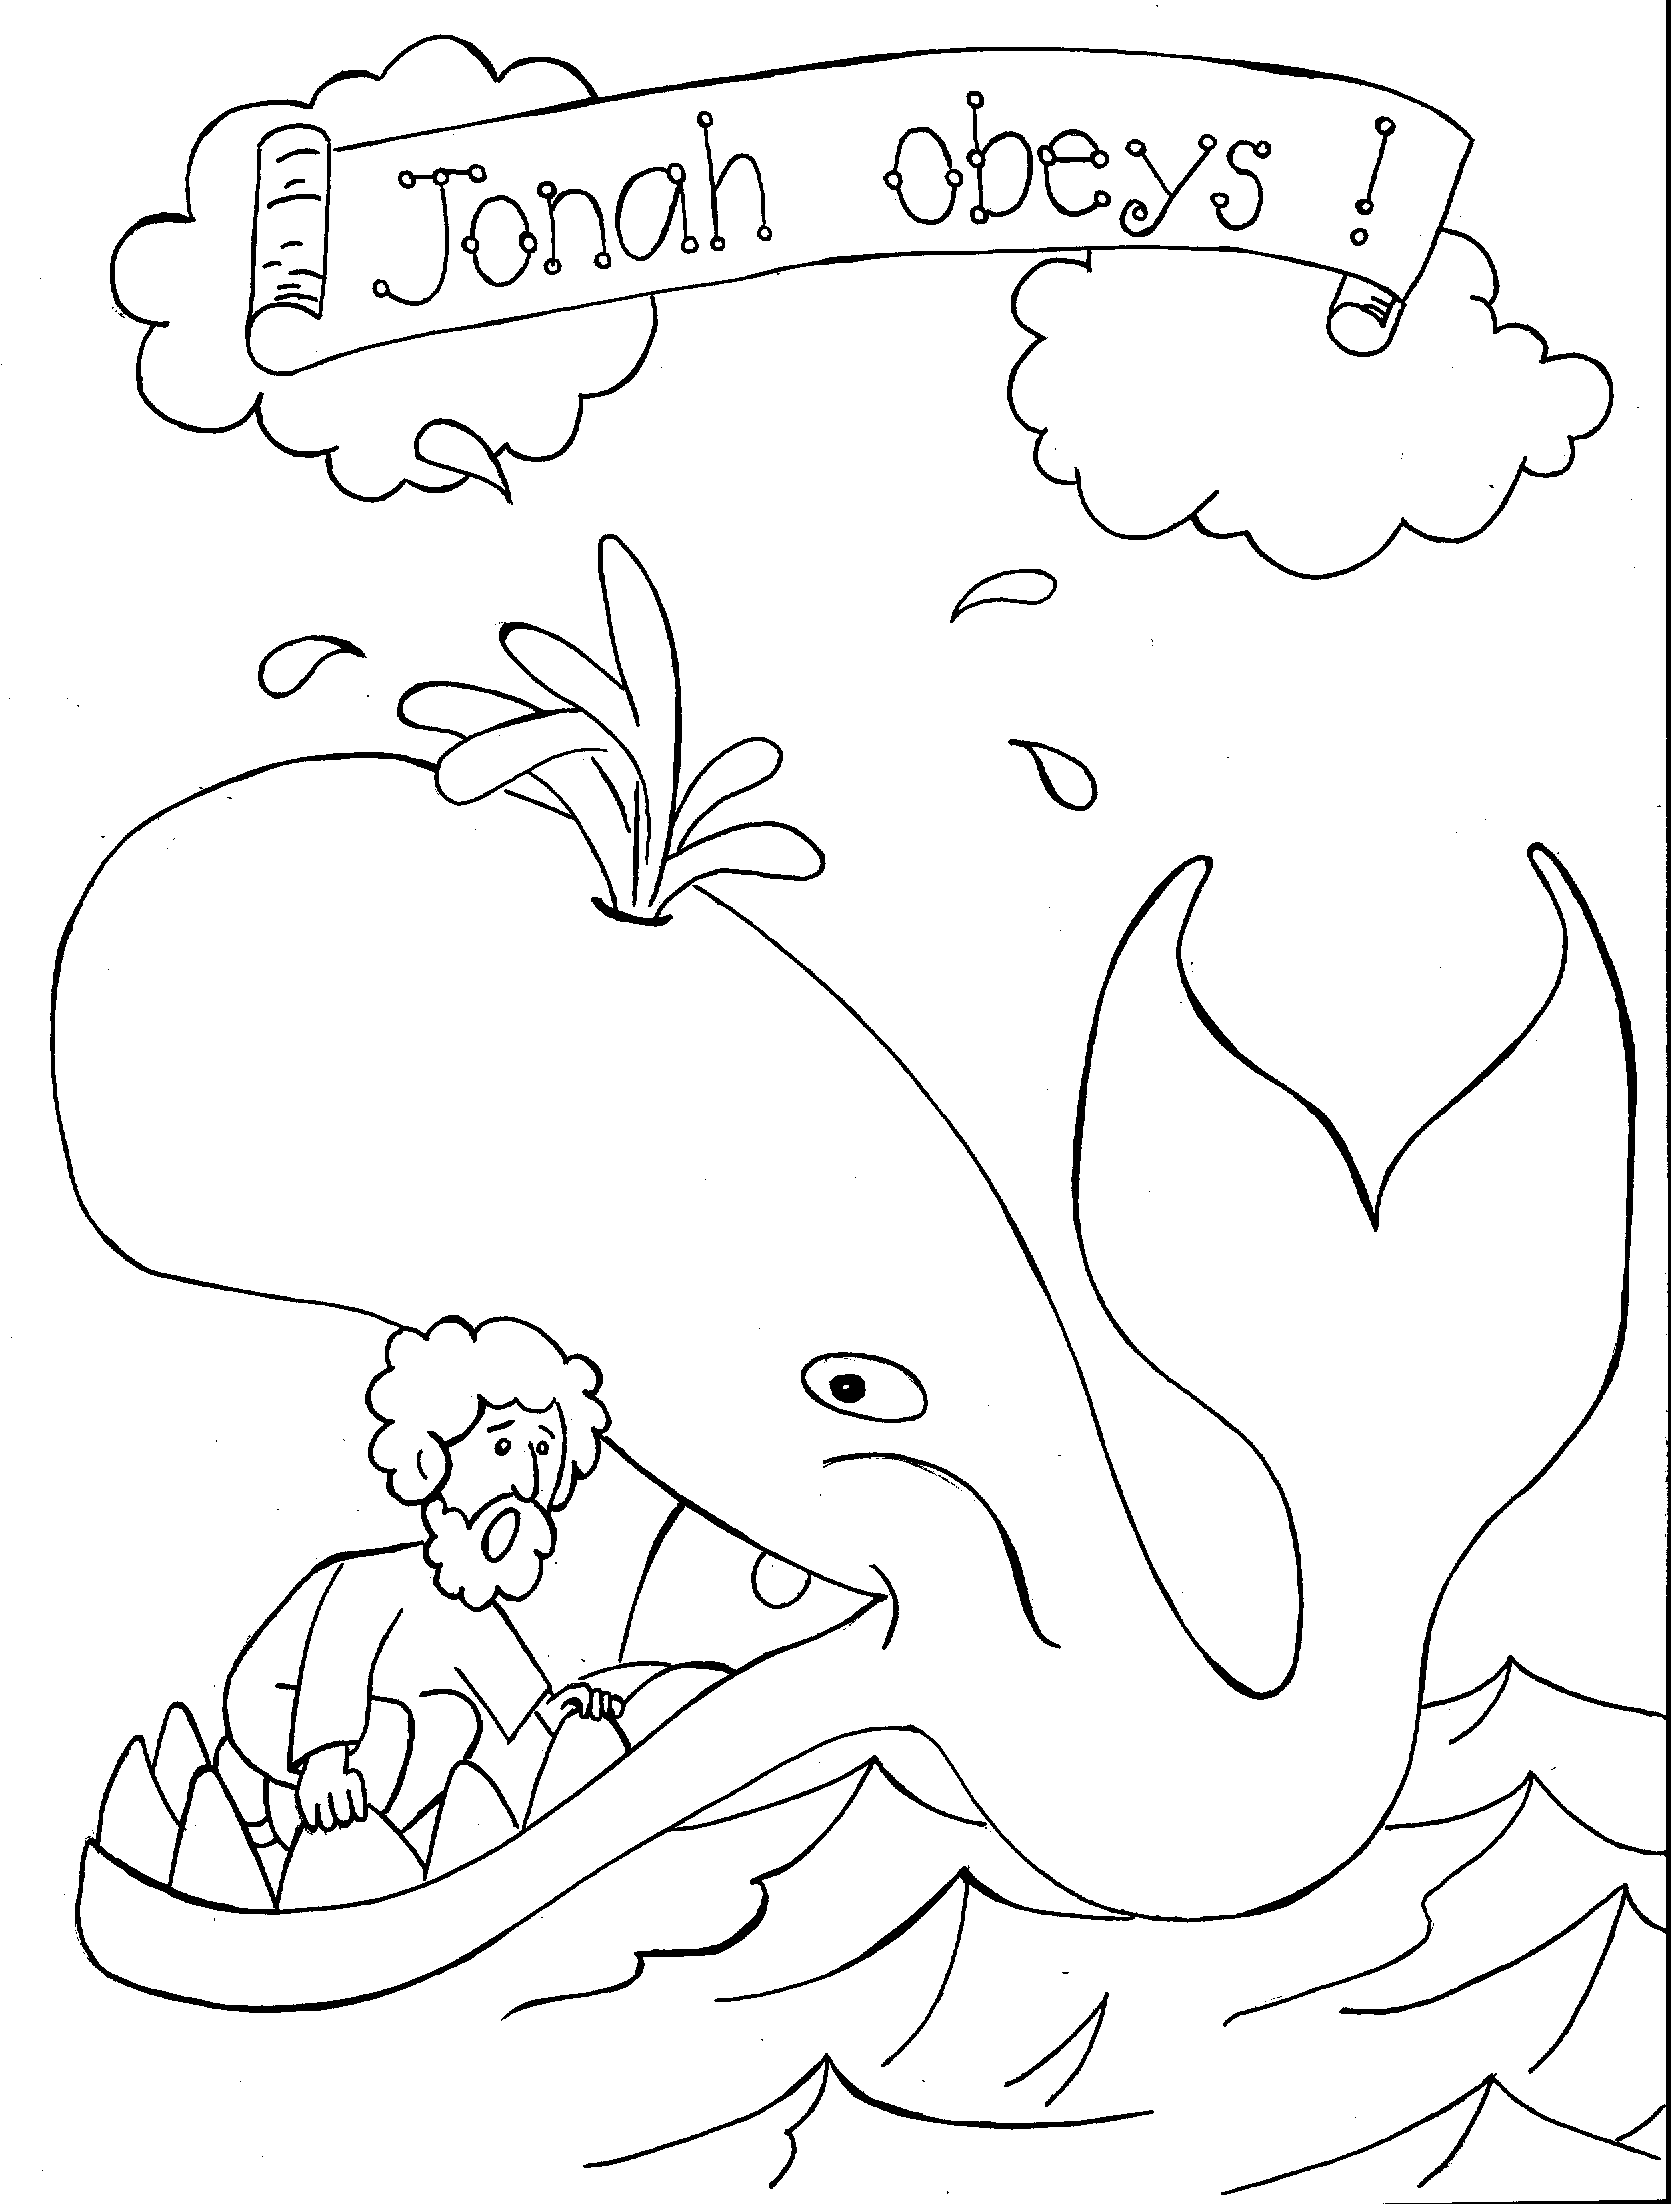 whale coloring picture killer whale coloring pages neo coloring coloring picture whale